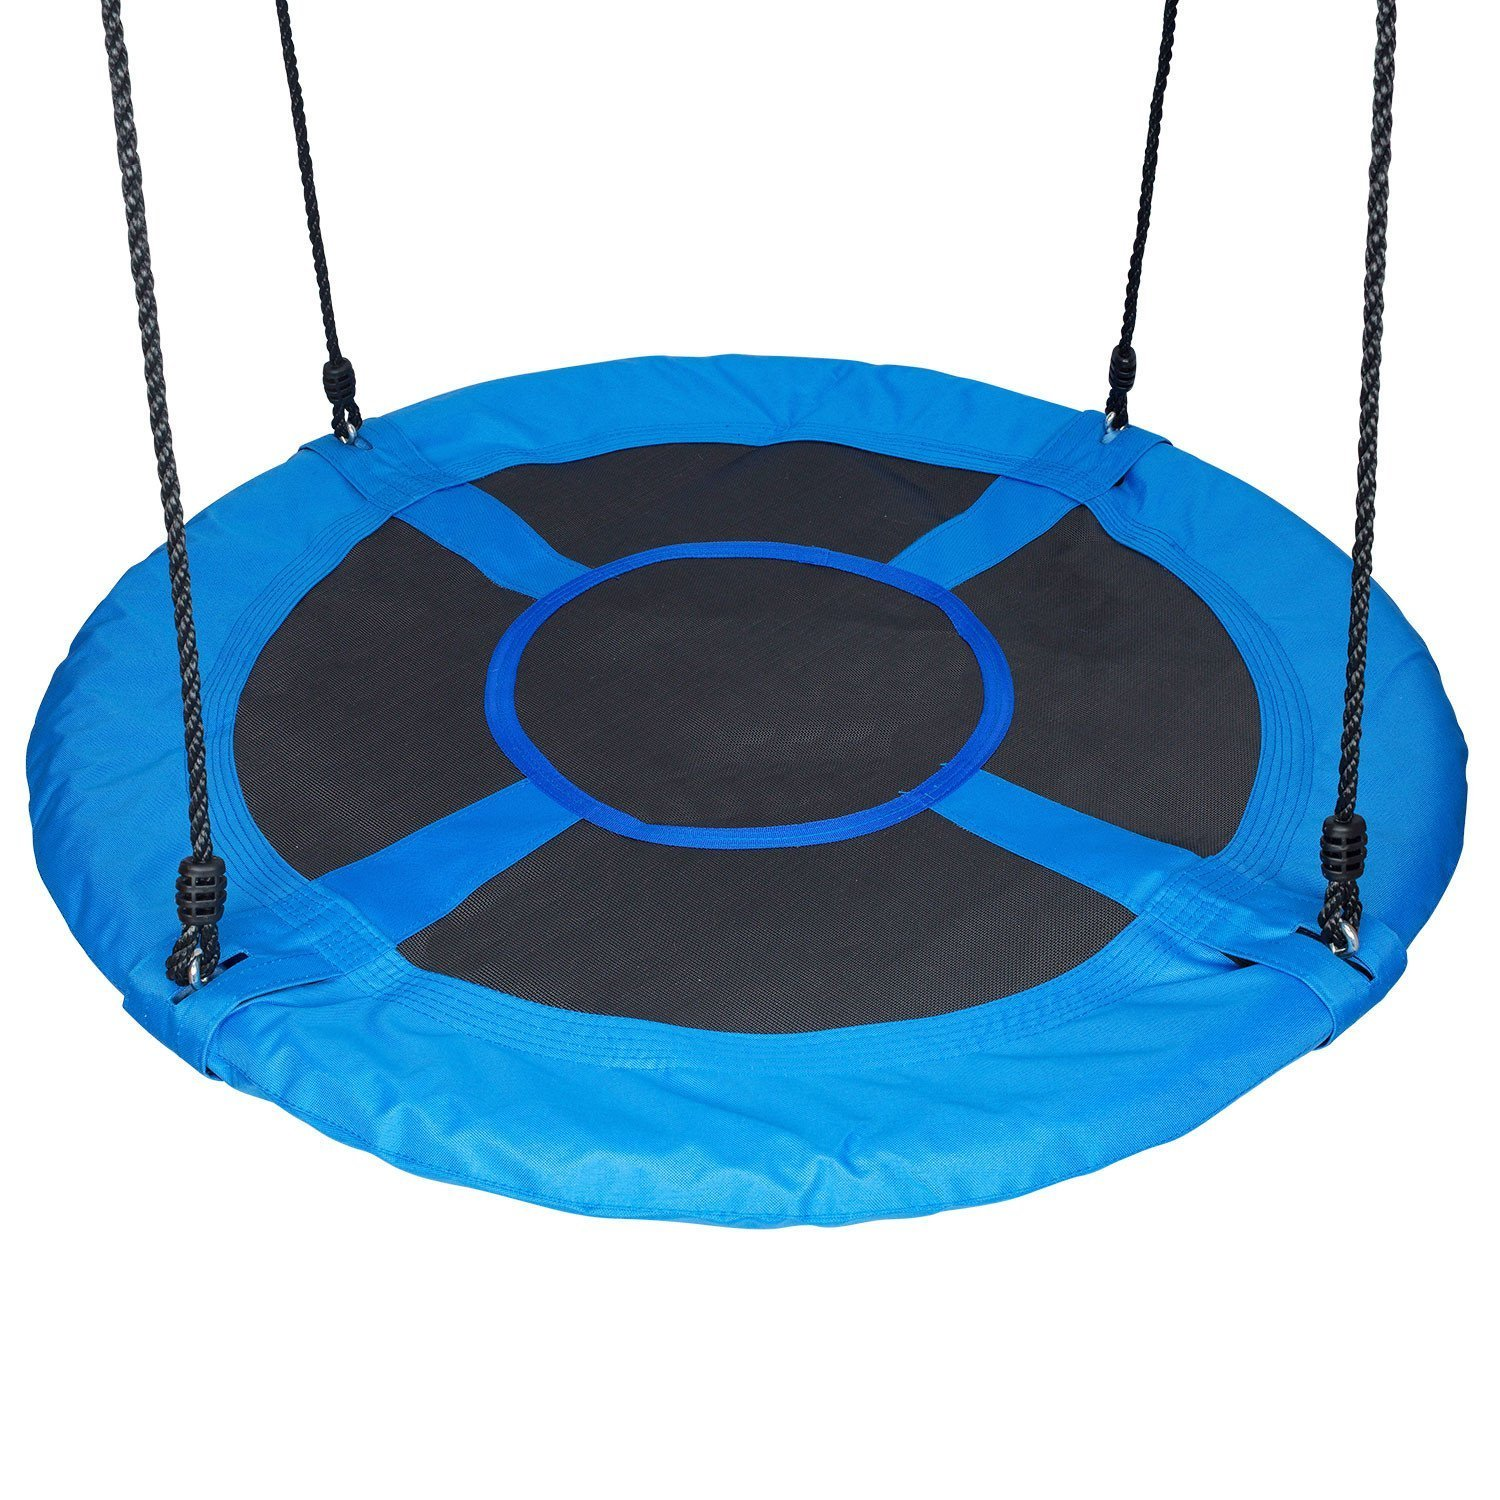 Saucer Safety Rating Over 600 Pounds Great for Playground Tree Heavy Duty Adjustable 6Ft PE Hanging Ropes Includes Durable Hanging Kit. Outdoor Use 40 Inch Net Spider Web Round Swing